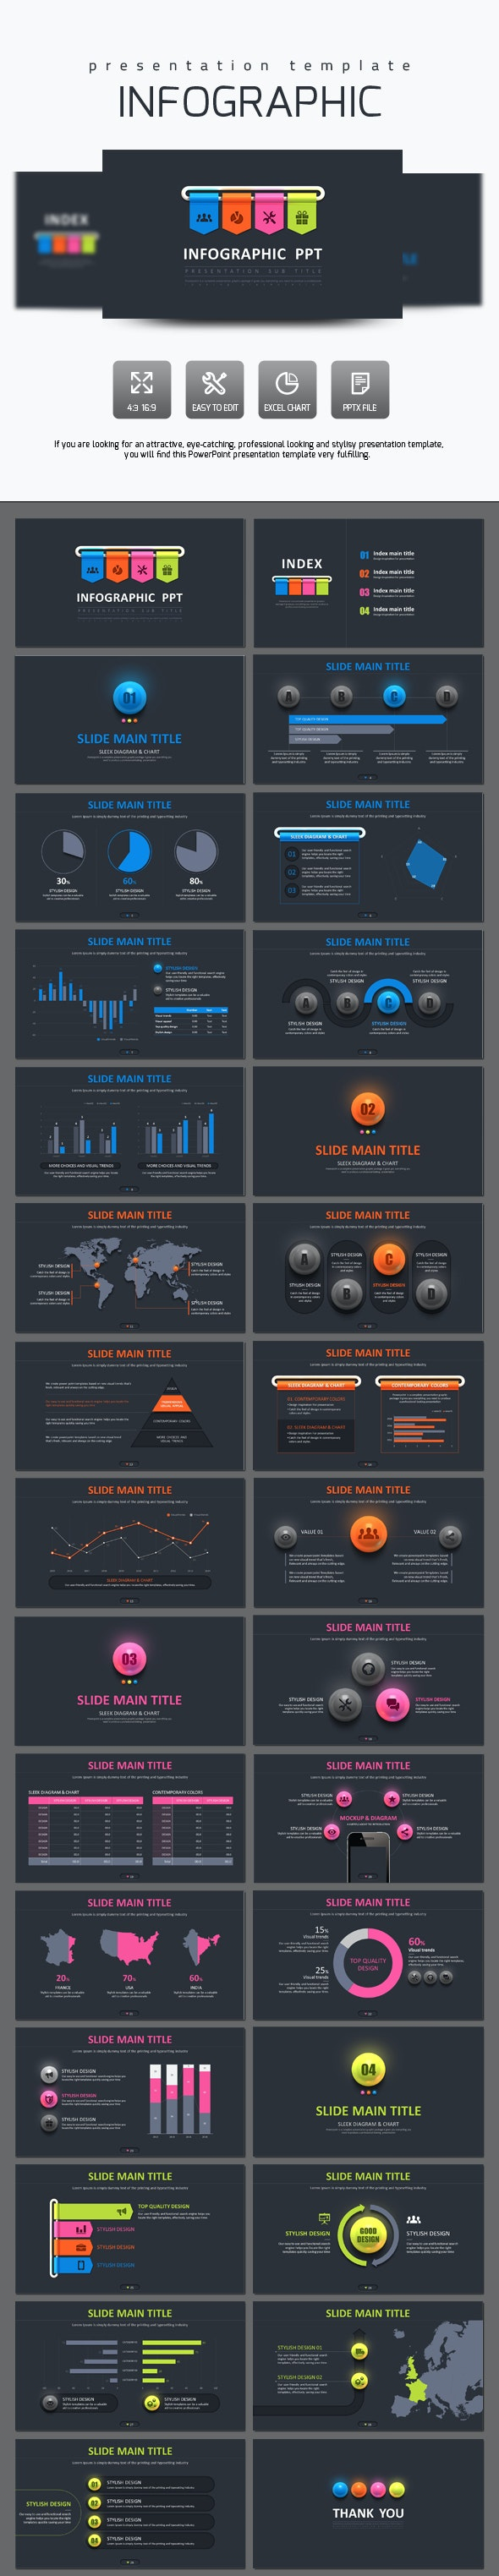 Infographic Presentation Template - PowerPoint Templates Presentation Templates